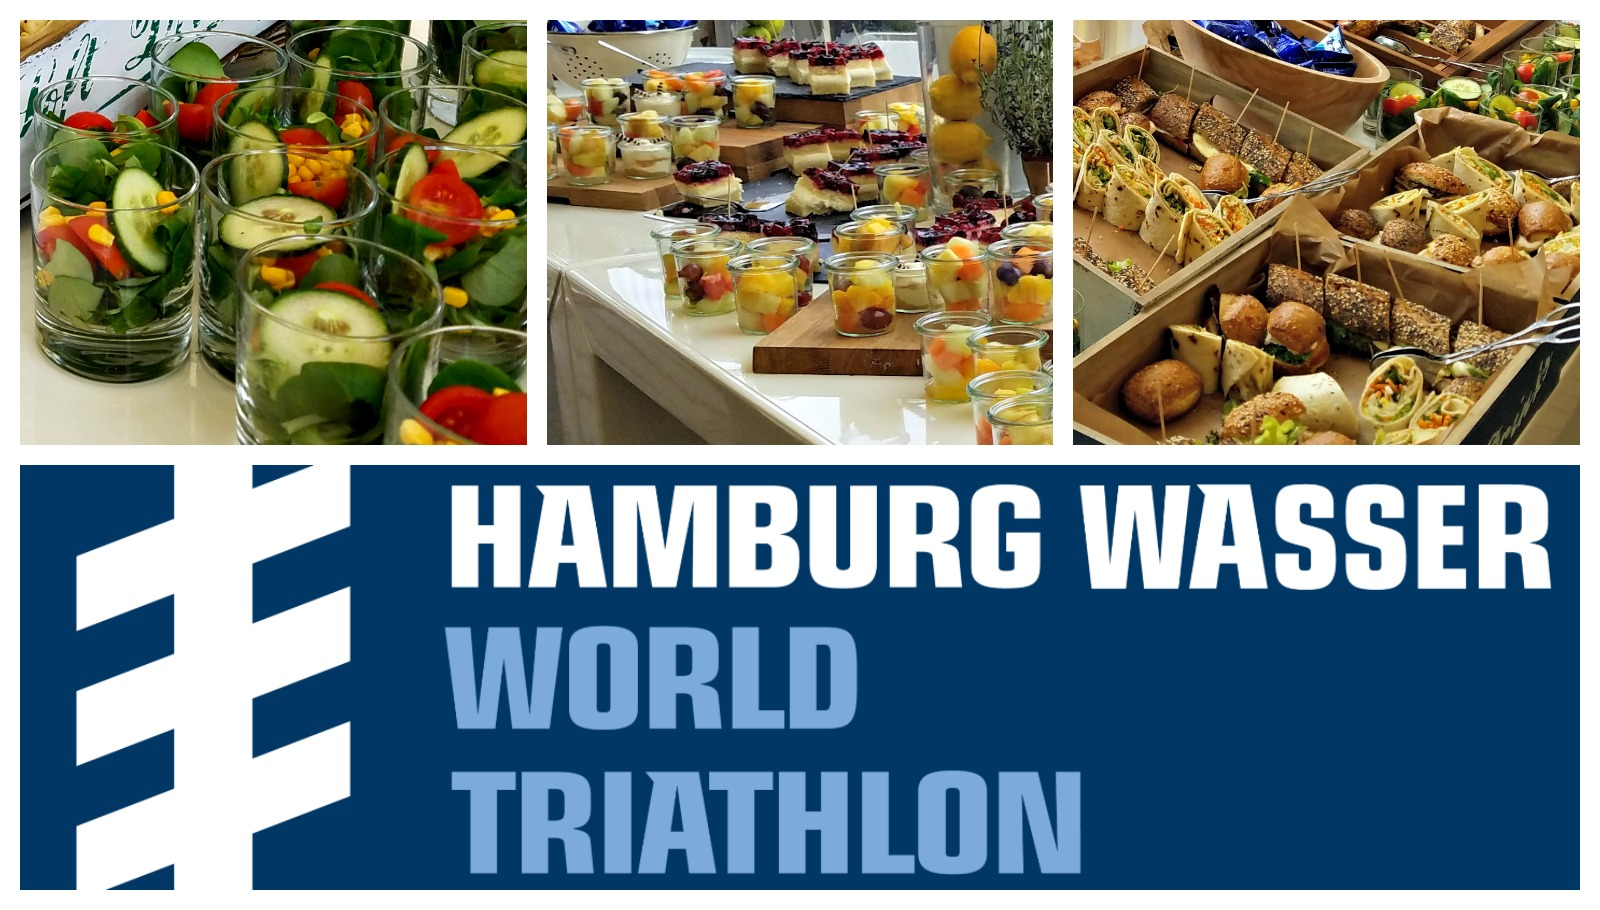 Hamburg Wasser World Triathlon #cometohamburg #hamburg #hamburghotels #PReventasHH